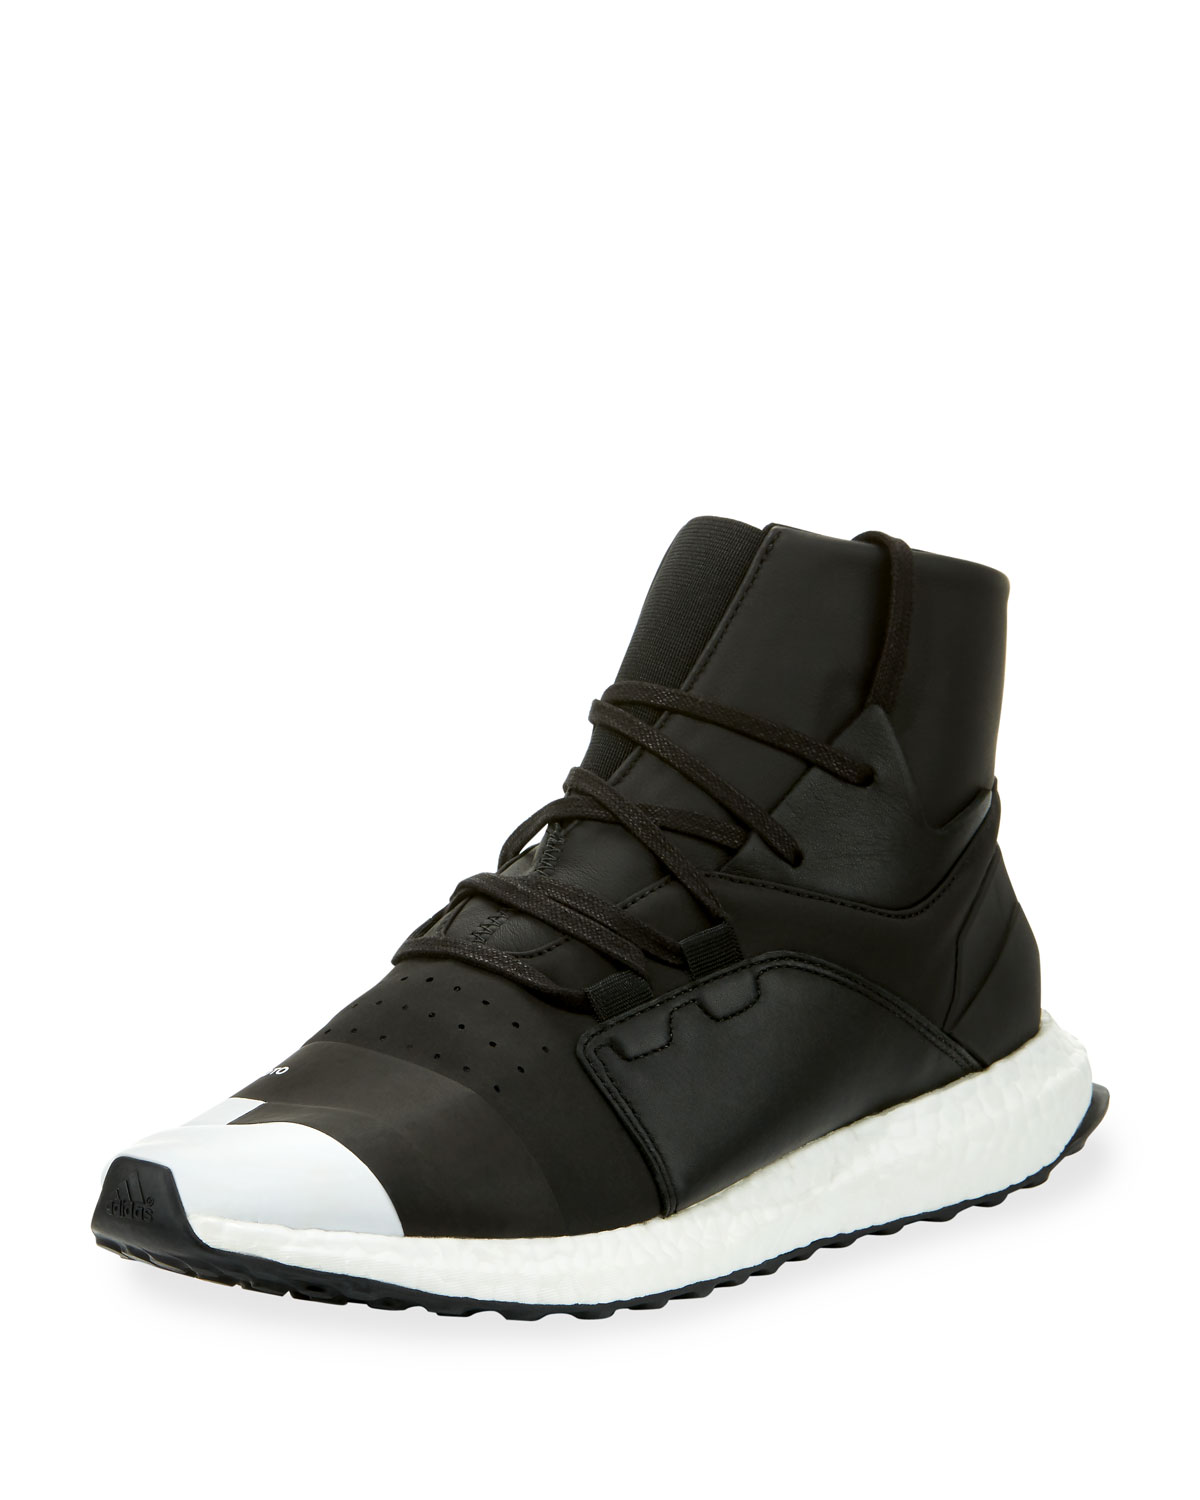 67d99c9f7 Y-3 Men s Kozoko High-Top Sneaker